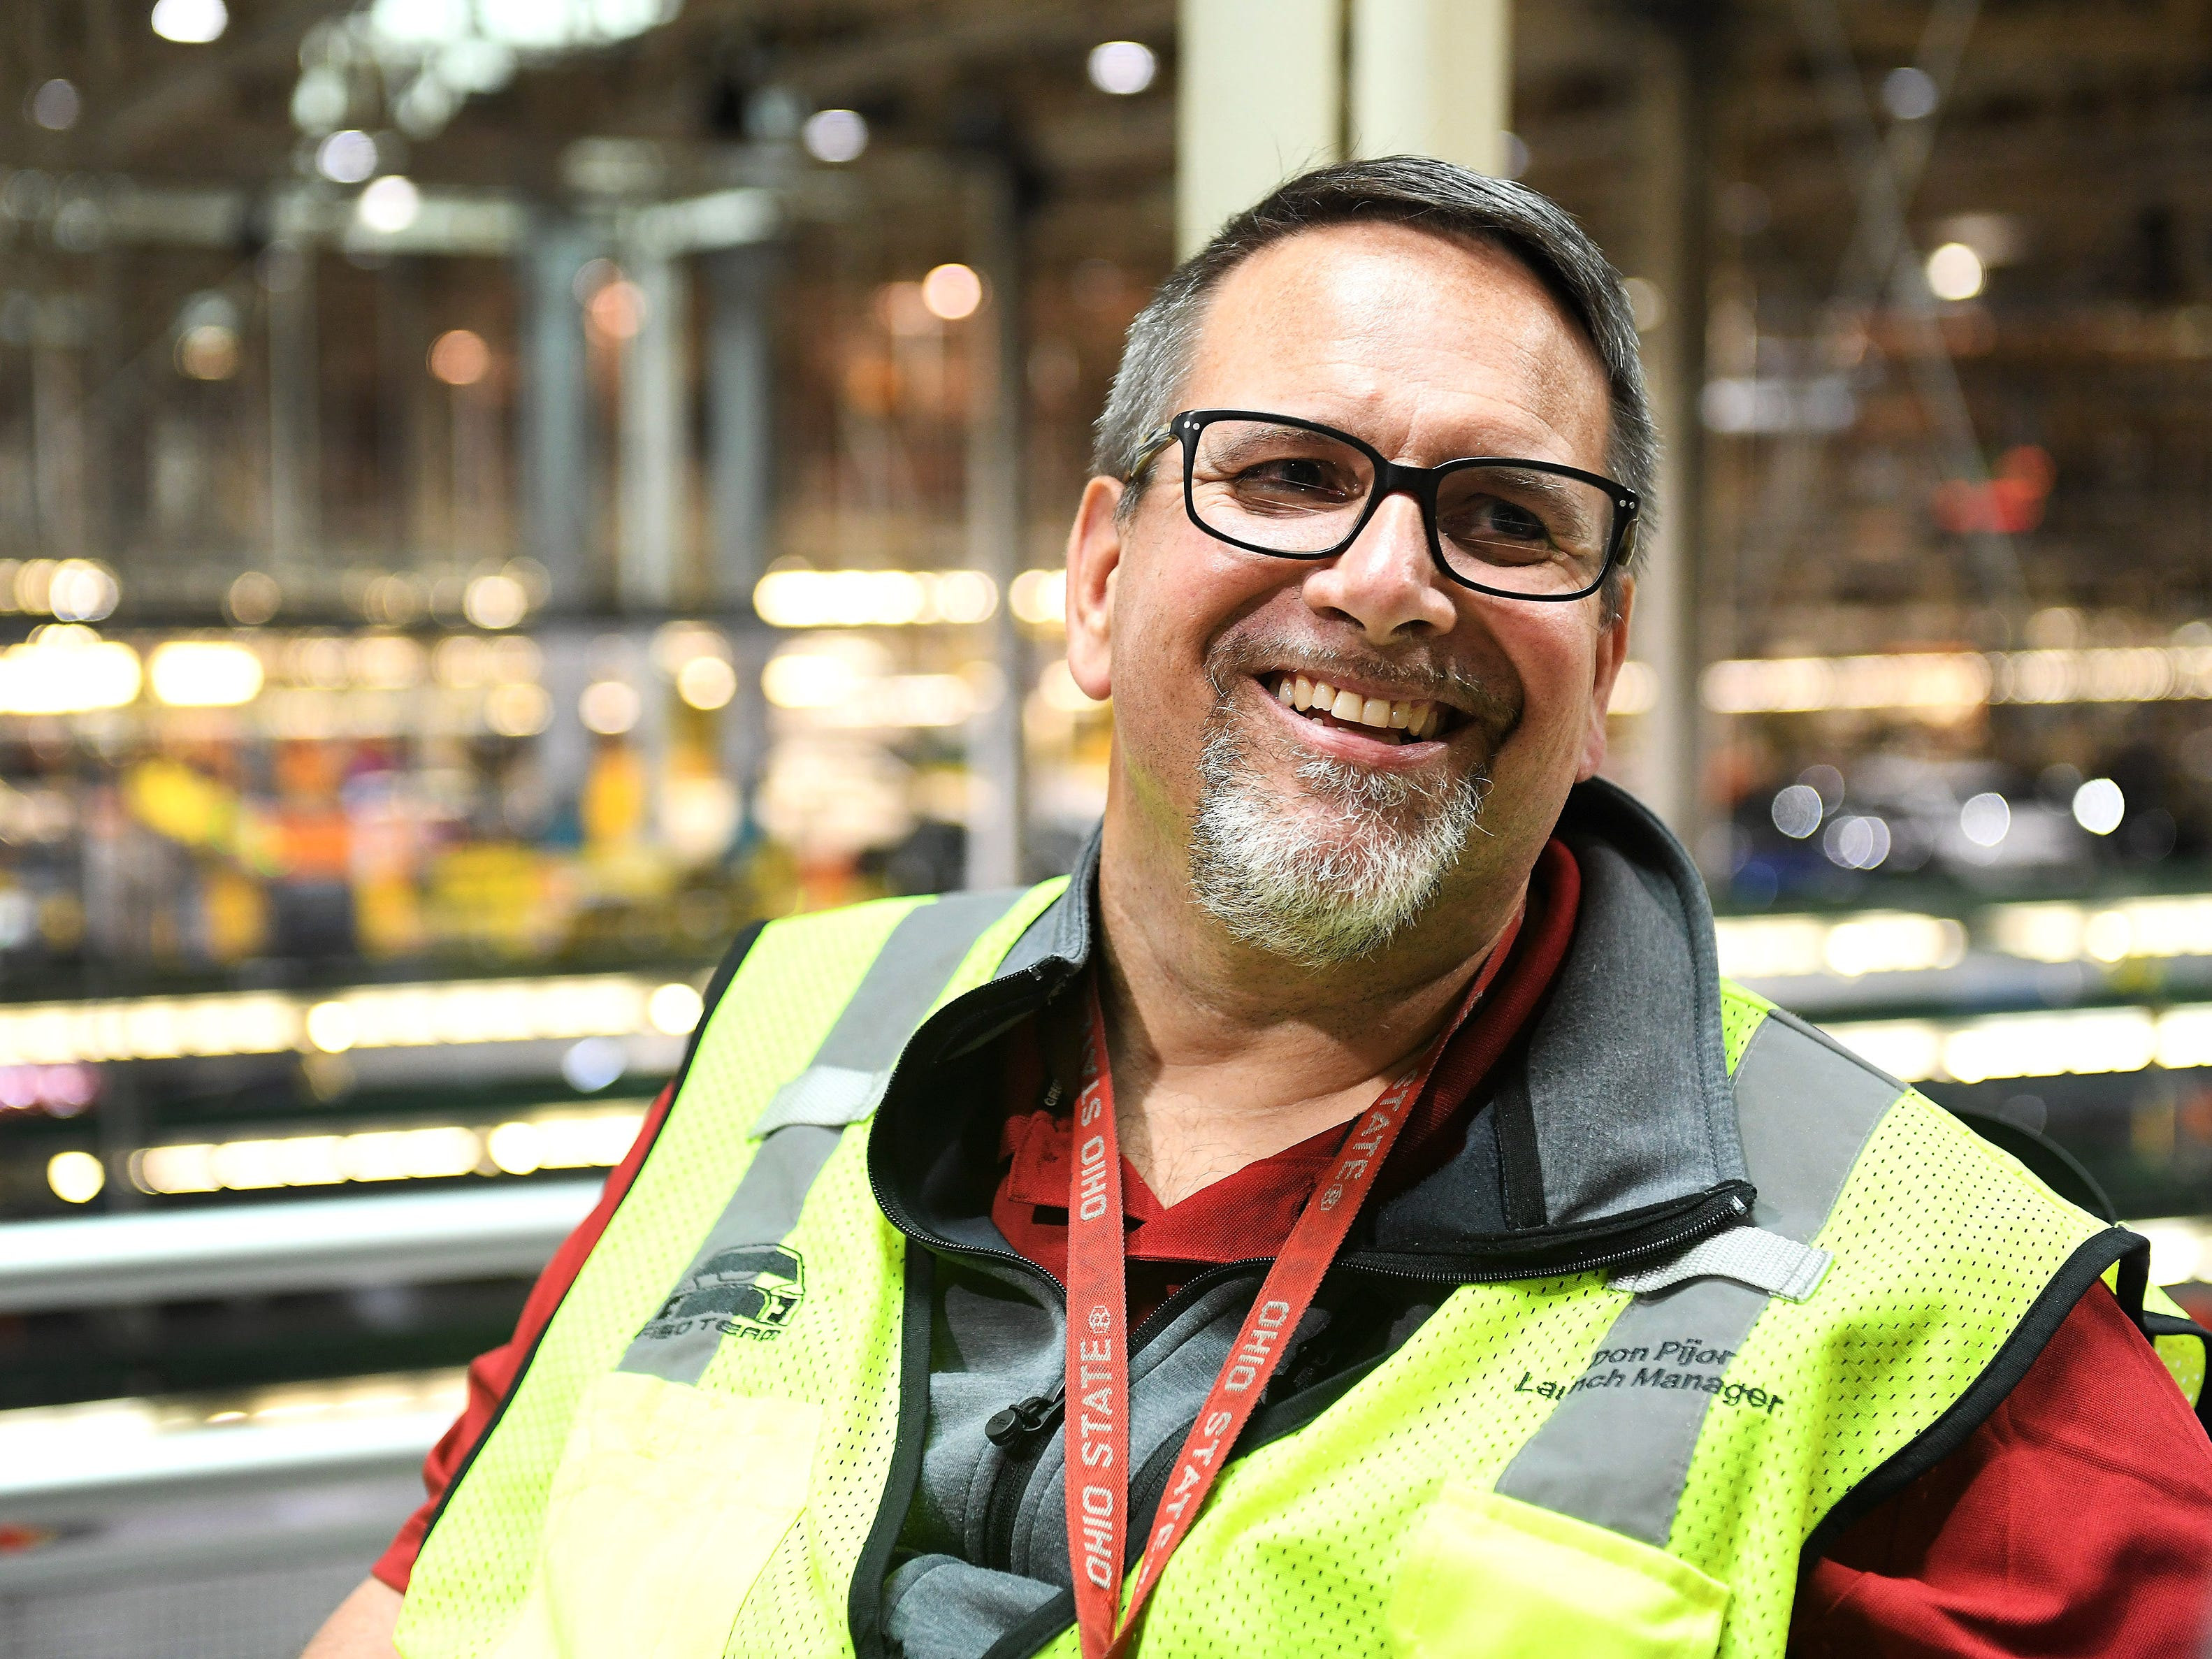 Ford F-150 launch manager Don Pijor reflects on his experiences with Ford Motor Company at the Ford Dearborn Truck Plant Final Assembly in the Rouge Complex.